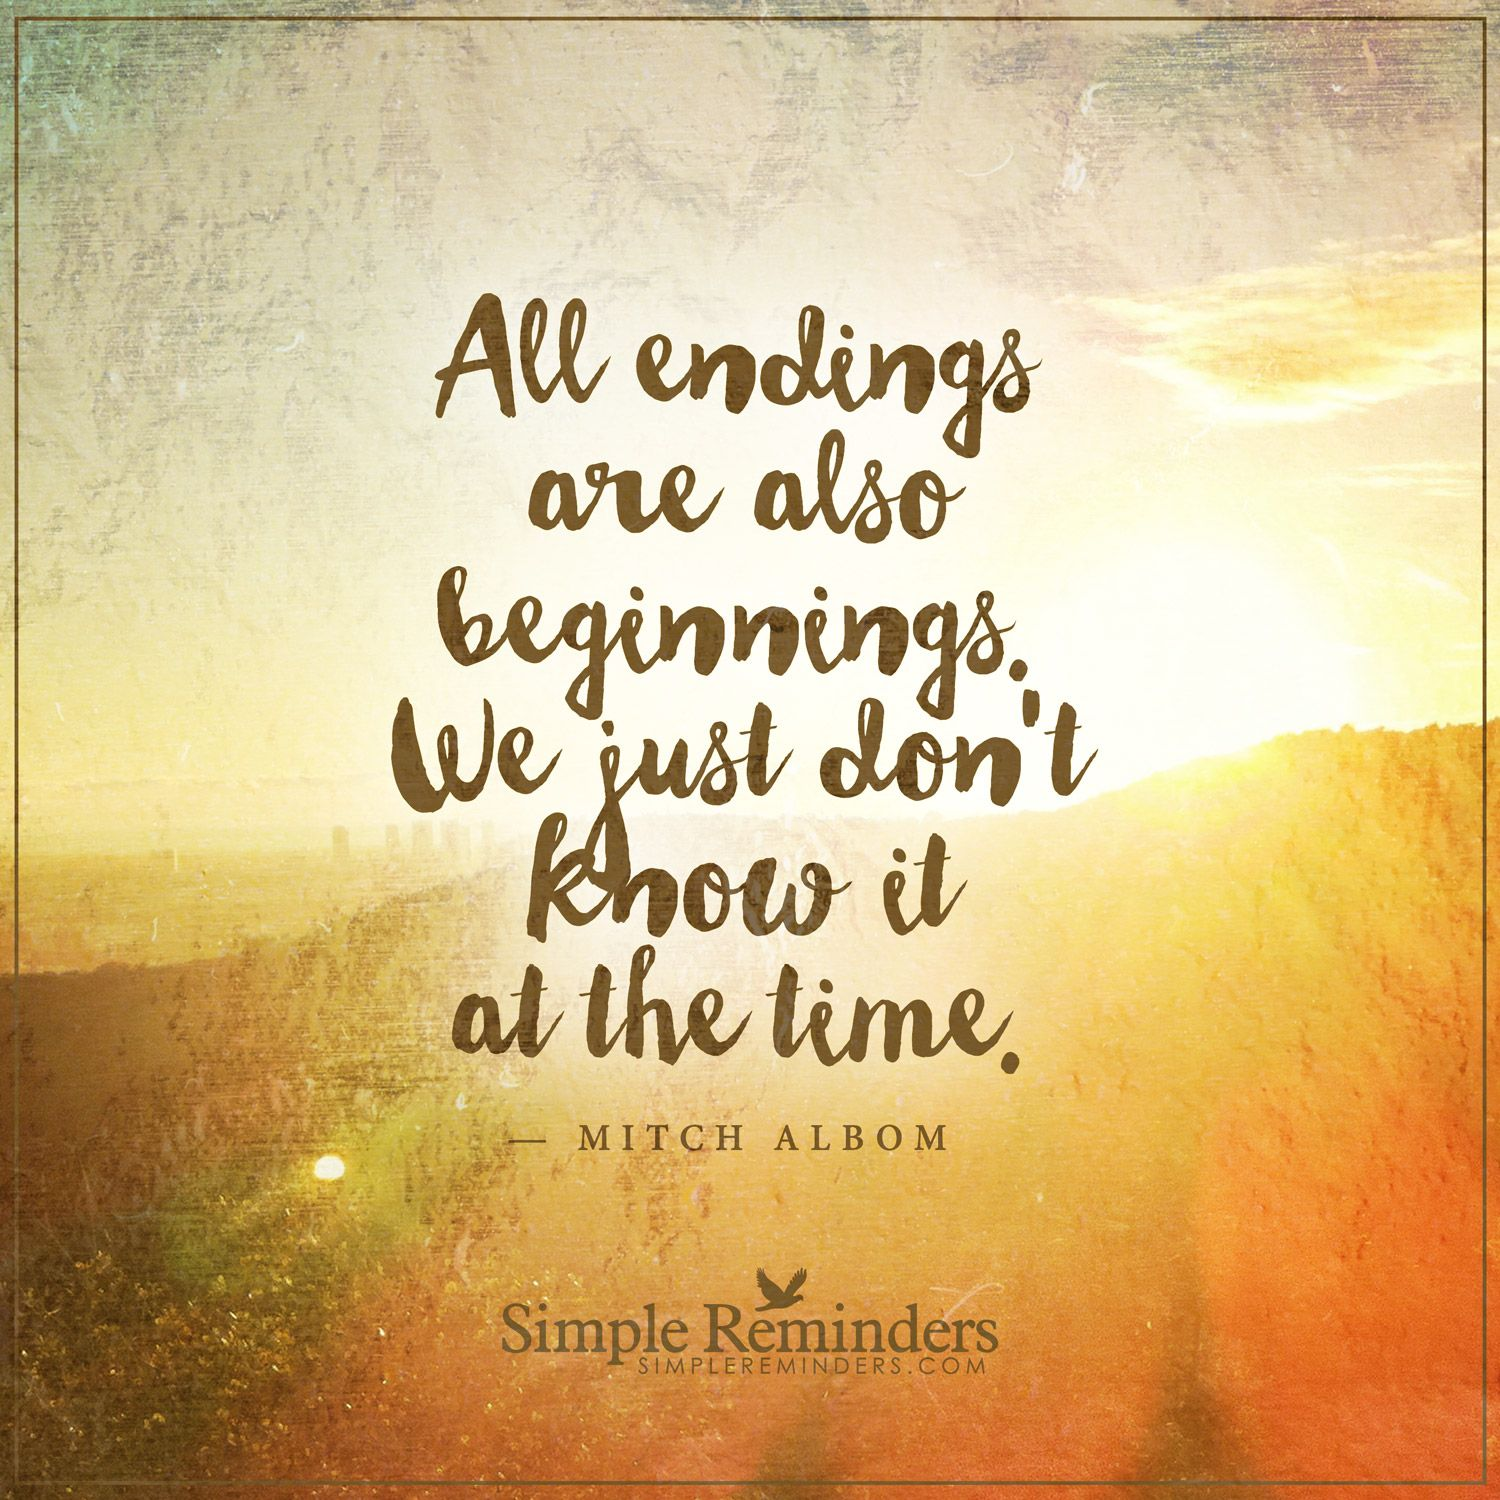 Endings are also beginnings All endings are also